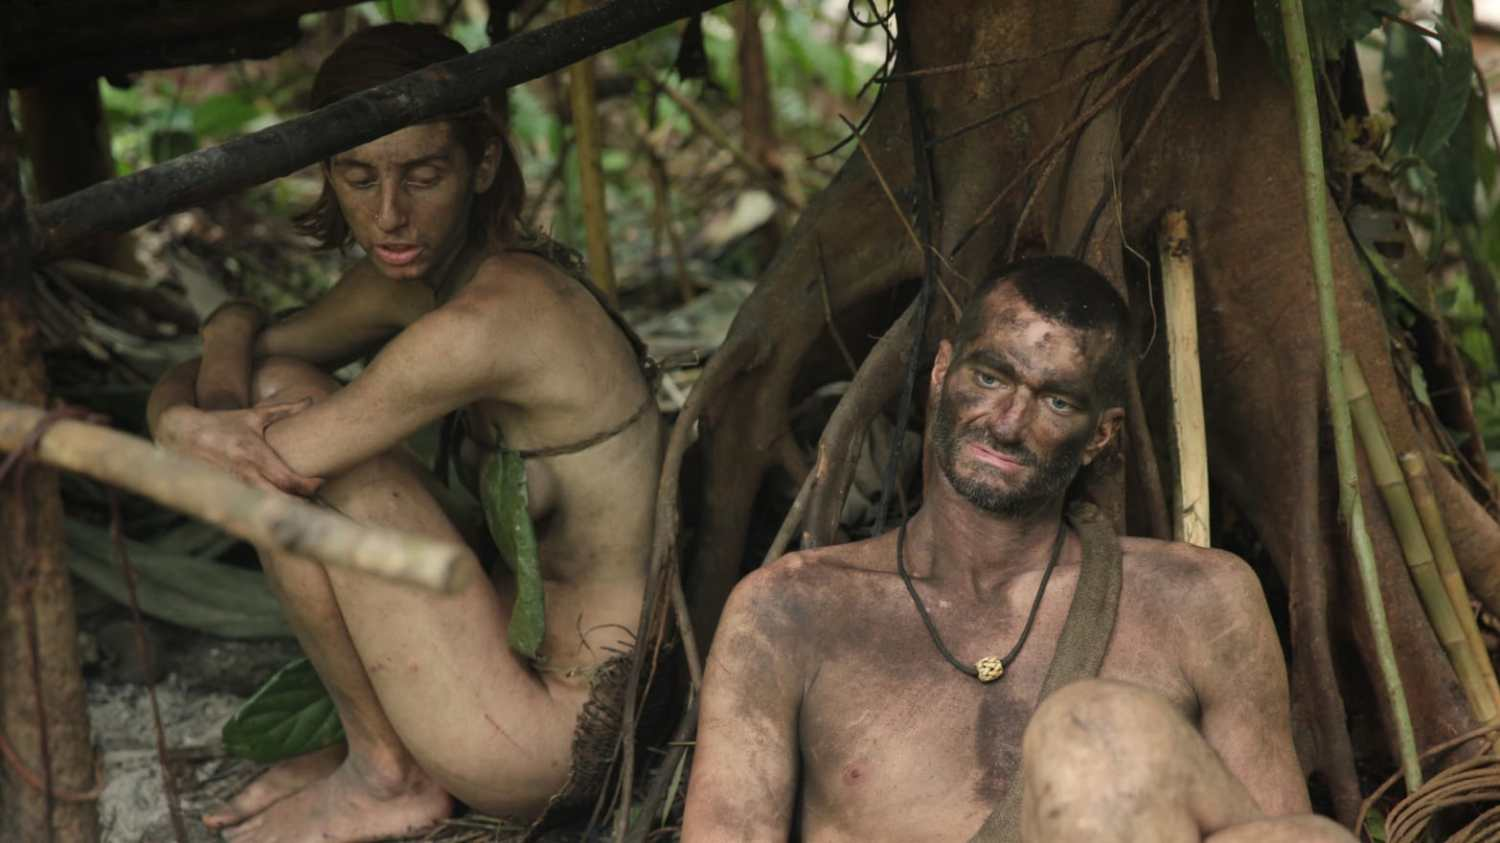 Do Naked And Afraid Contestants Have Sex During Their Stay?